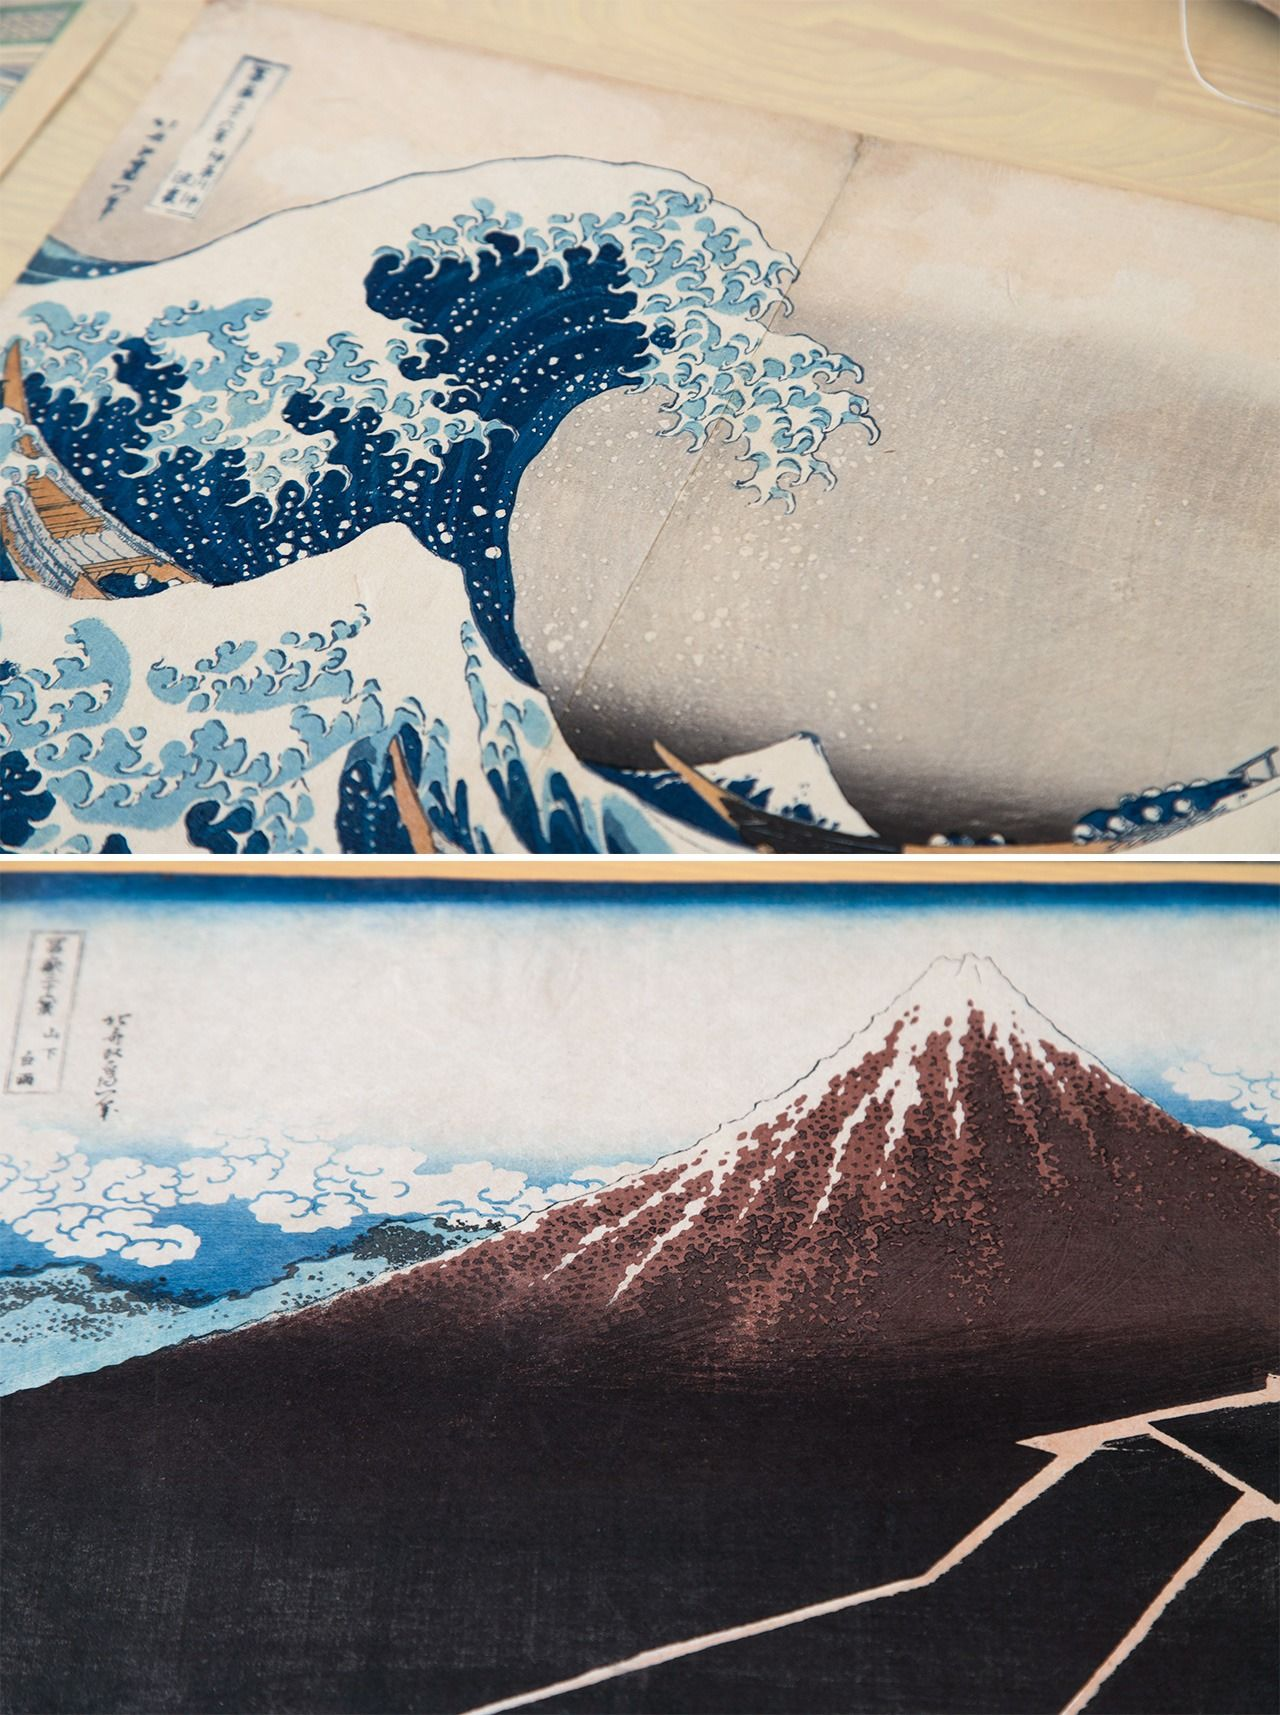 The Great Wave off Kanagawa (above) and Shower Below the Summit from Katsushika Hokusai's Thirty-Six Views of Mount Fuji, both in the private collection of Uragami Mitsuru.